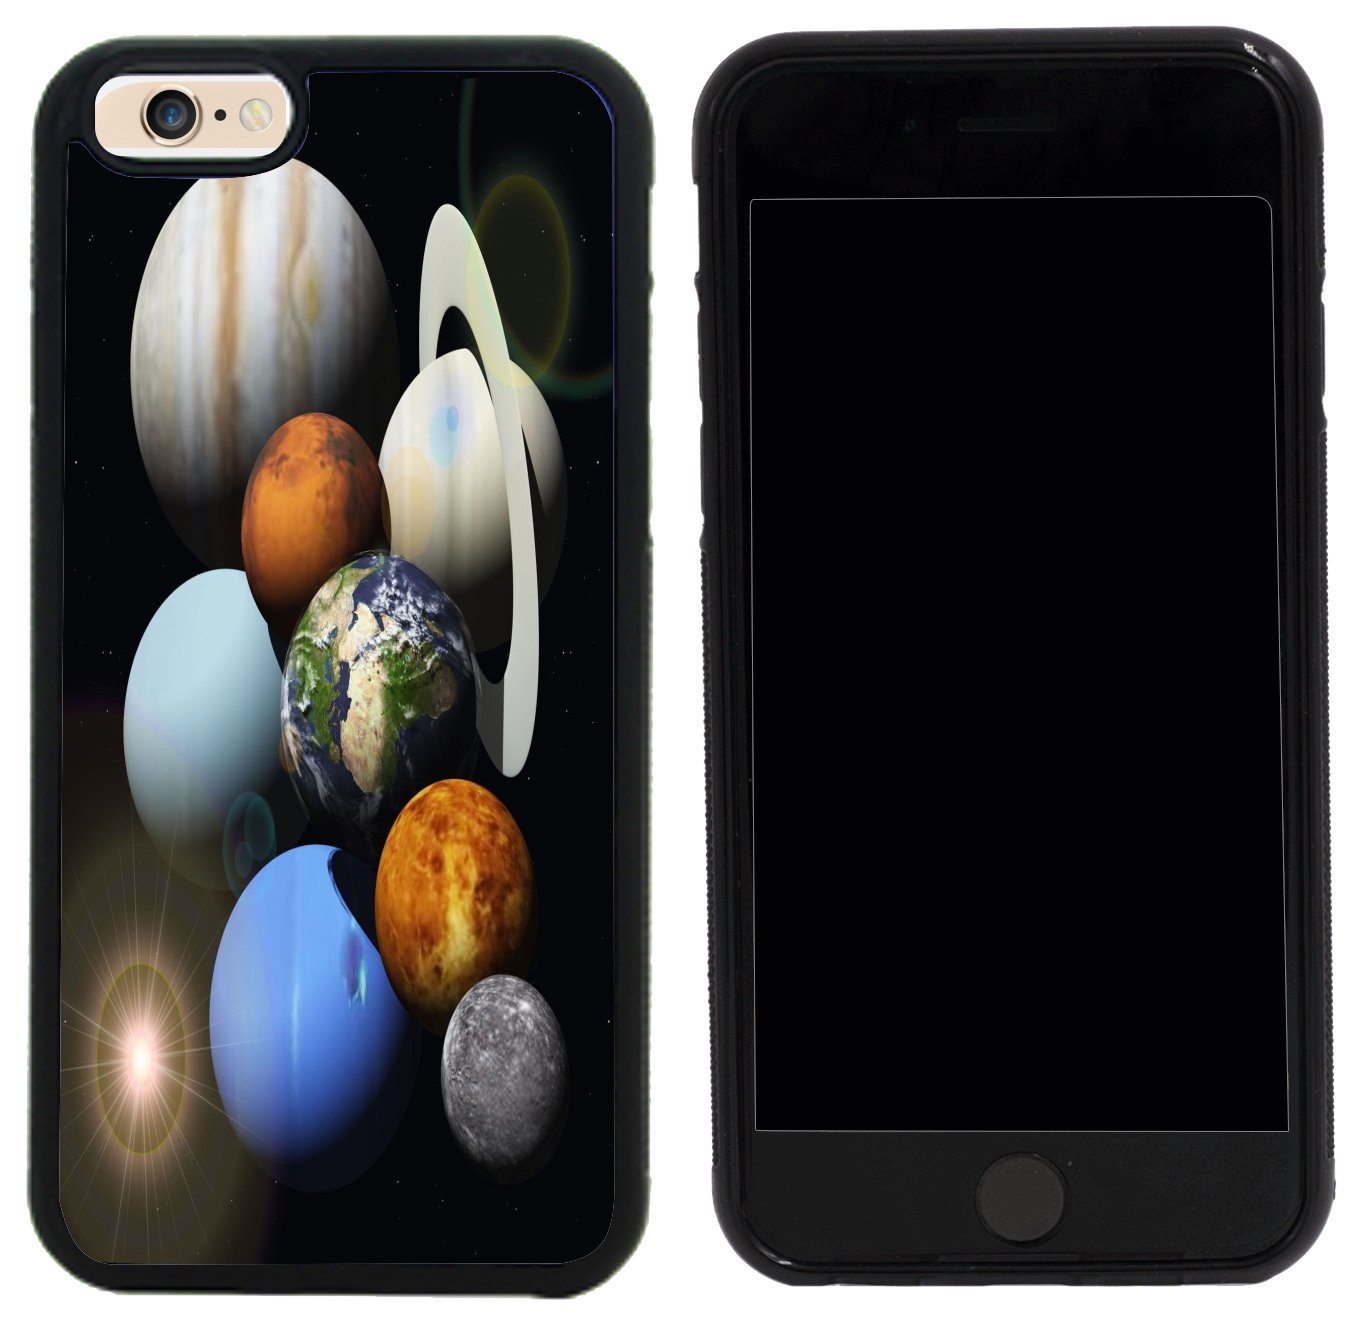 Rikki Knight Case Cover for iPhone 6/6s - Solar System Planets Design by Rikki Knight